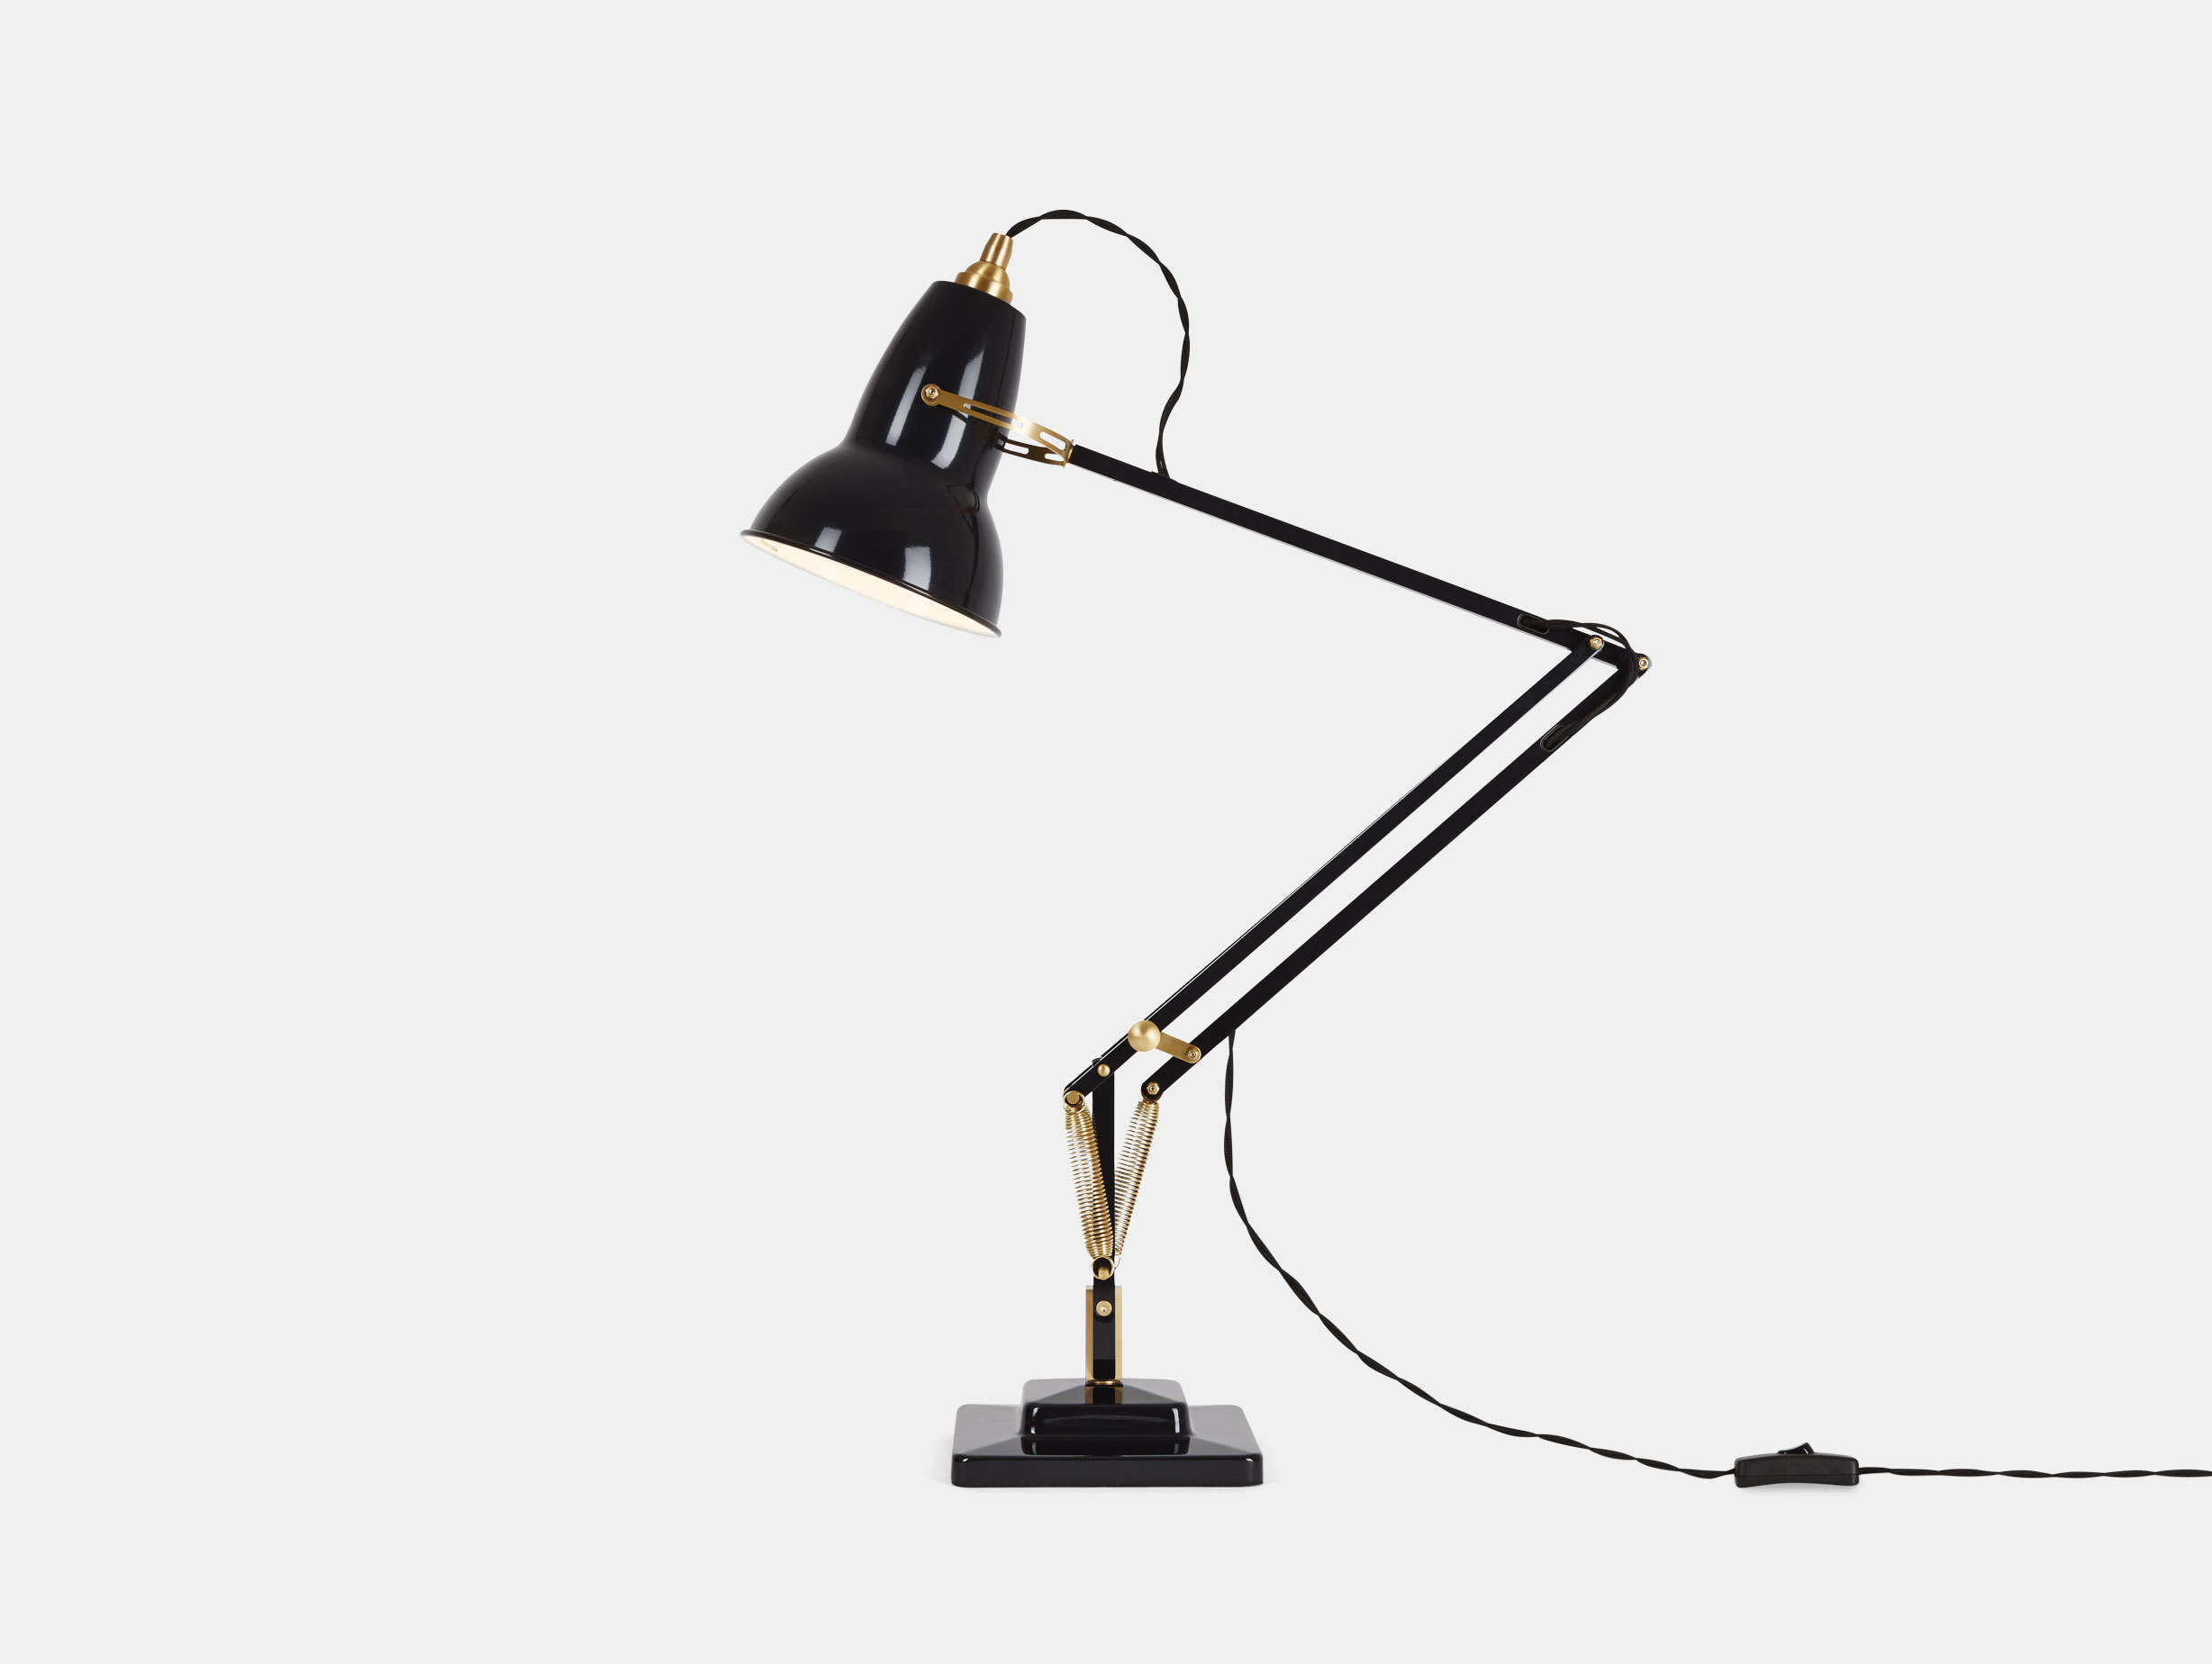 Anglepoise 1227 Brass Table Lamp image 2